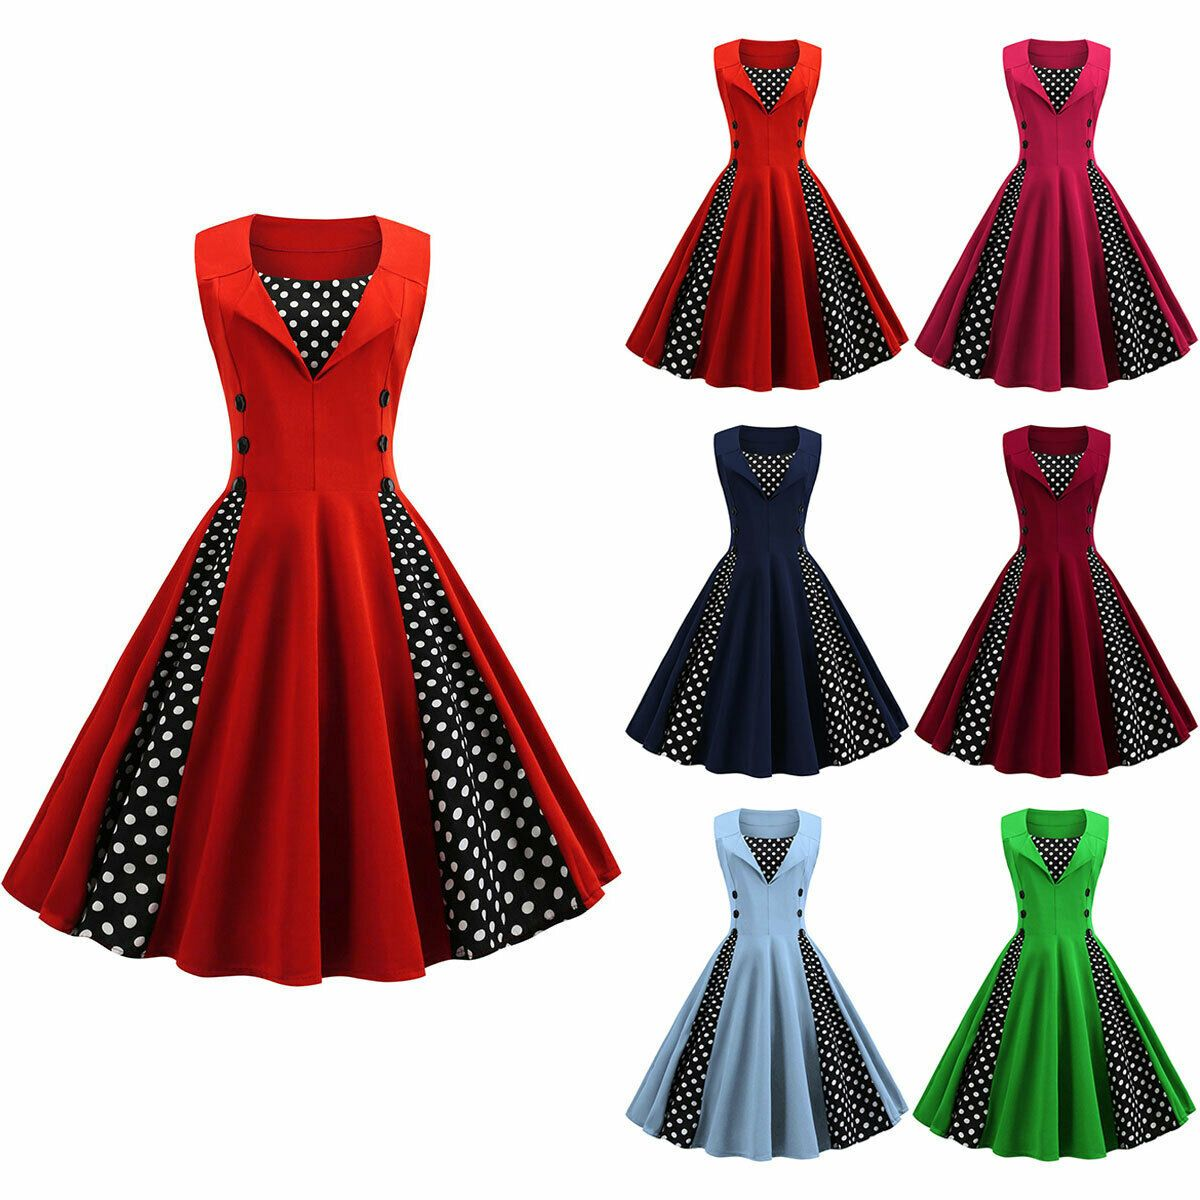 Retro Vintage Style Polka Dot Rockabilly Housewife Evening Party Cocktail Dress Dress Honey In 2020 Cocktail Dress Party Vintage Polka Dot Dress Cocktail Dress Vintage